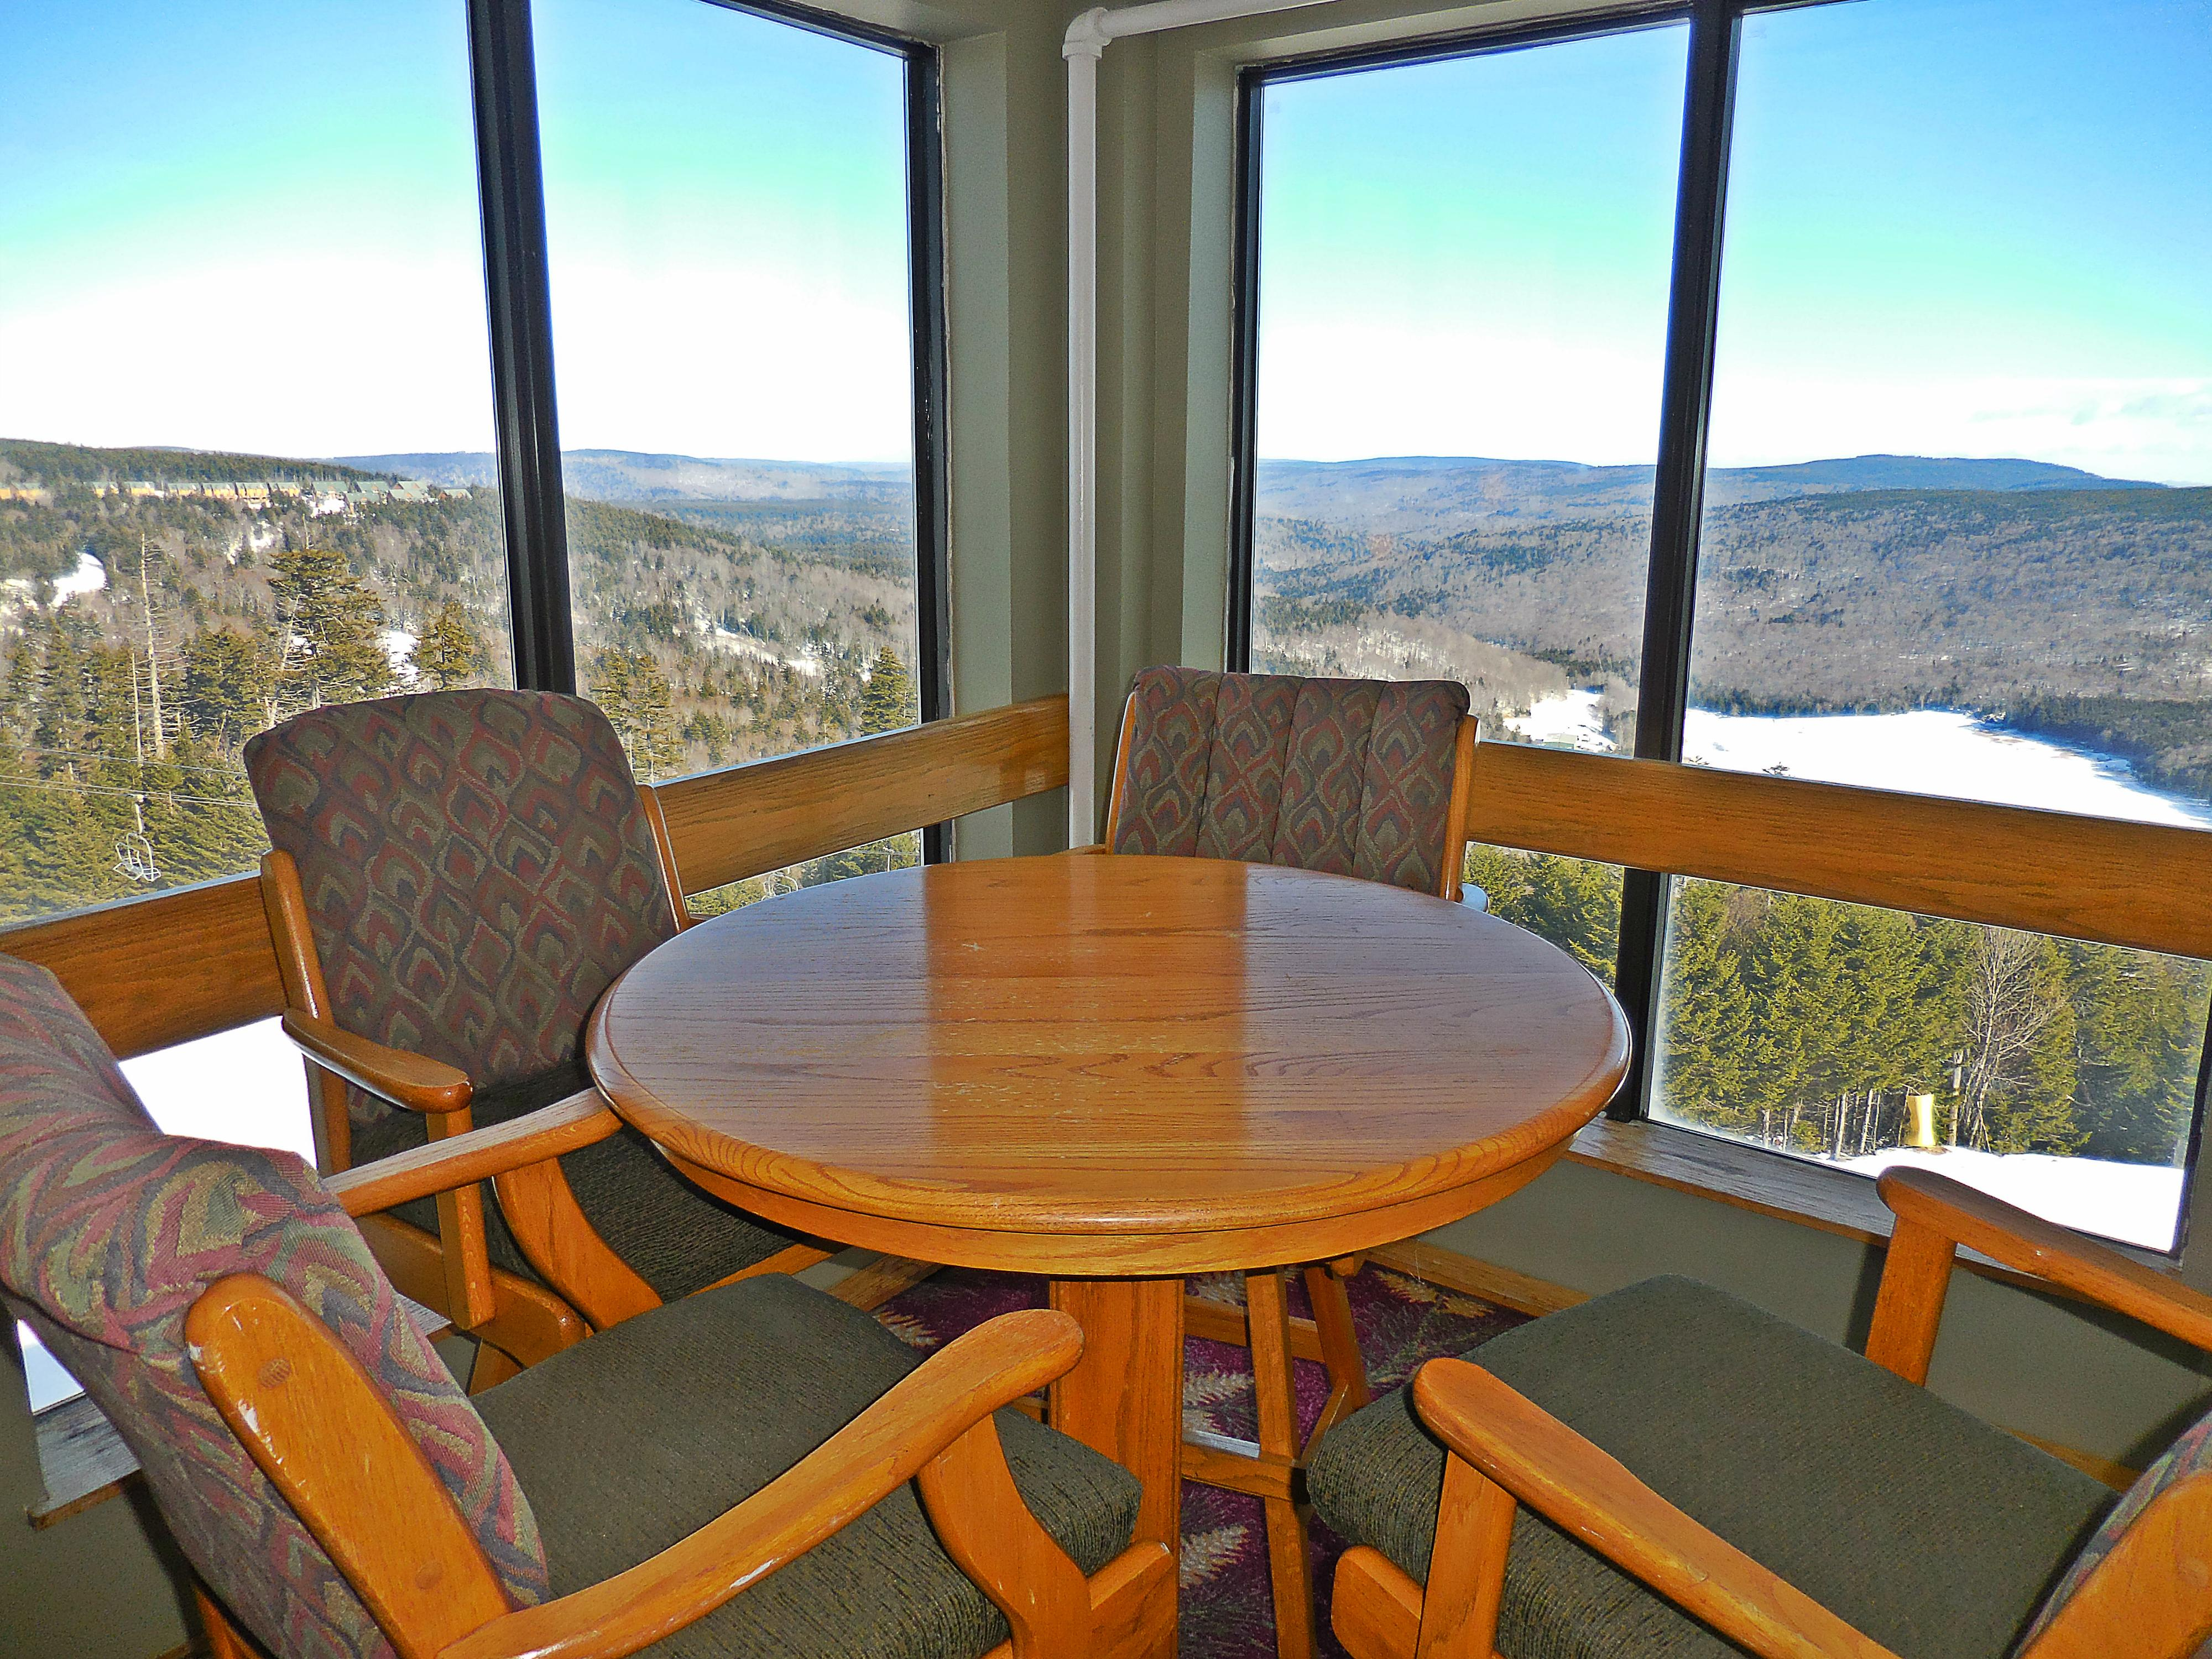 Mountain Lodge sitting areas overlook slopes and mountains